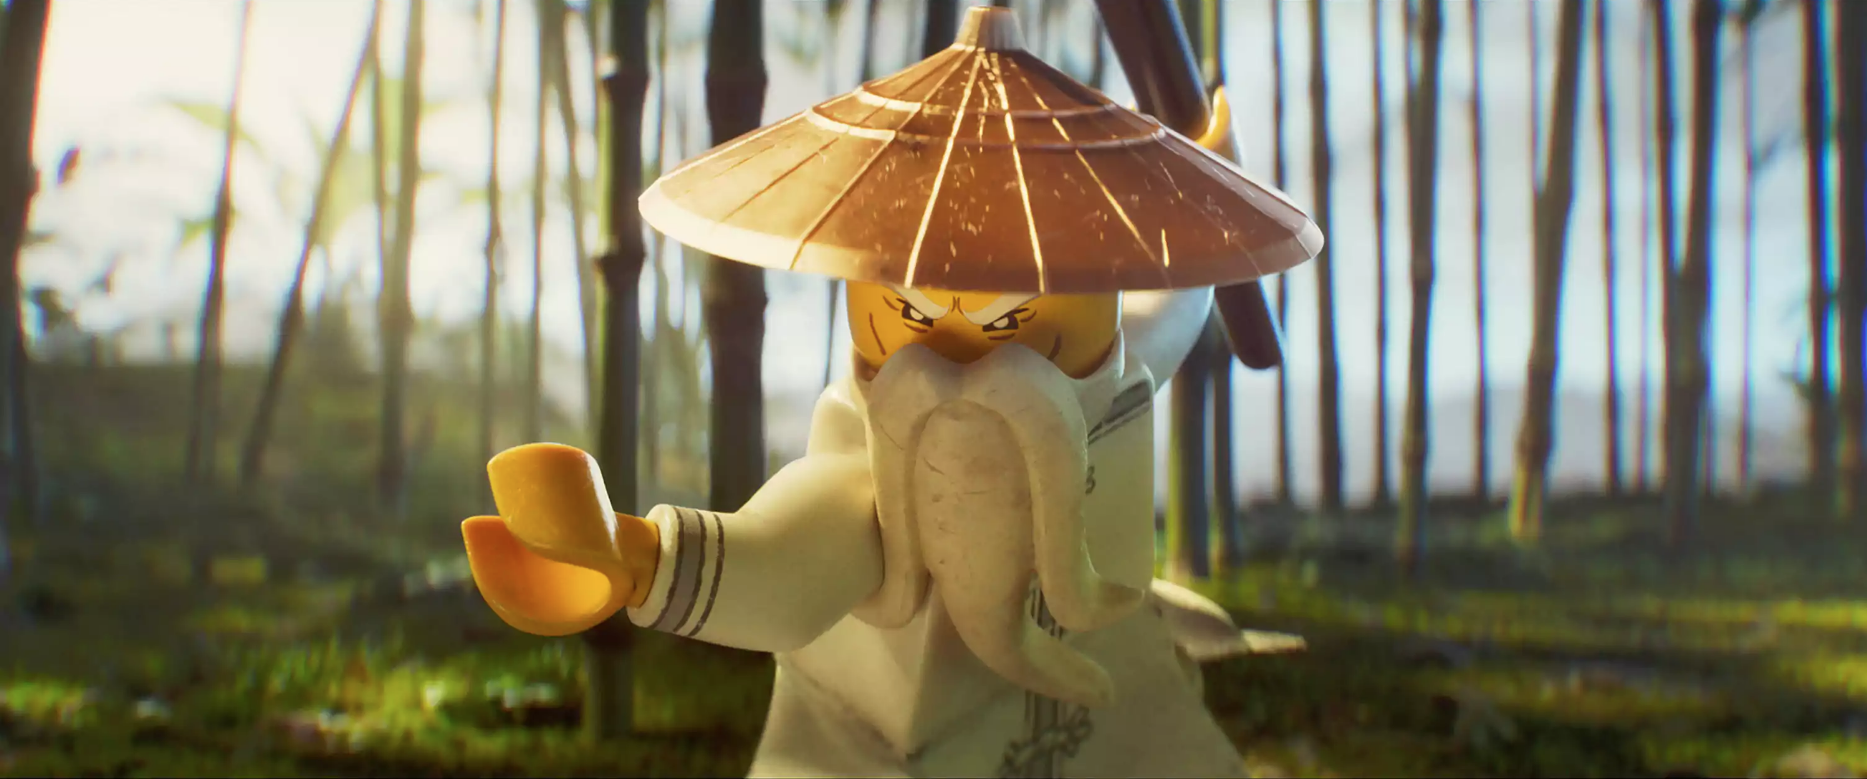 movie times and movie theaters in elmhurst ny local showtimes watch the lego ninjago movie teaser introduces a reluctant team of ninjas